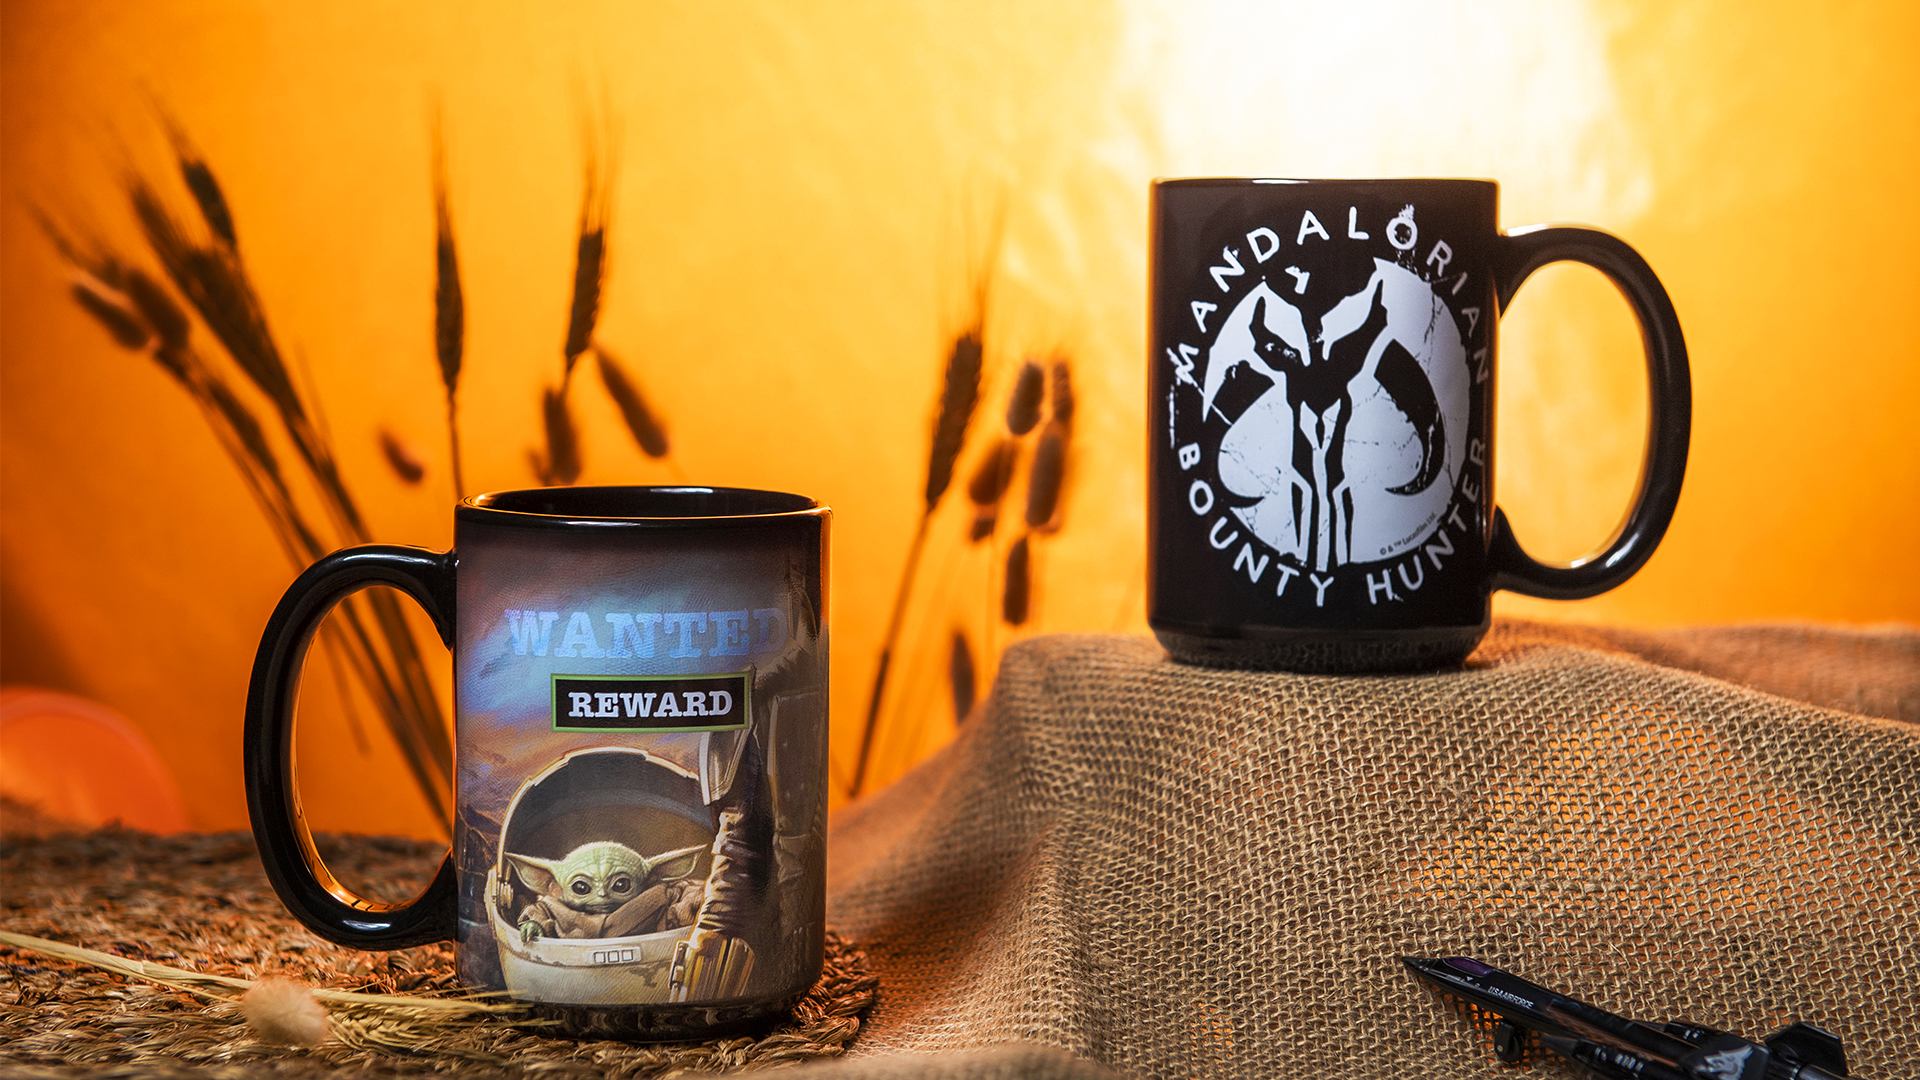 Star Wars: The Mandalorian 15 ounce Ceramic Coffee Mugs, The Mandalorian slideshow image 8